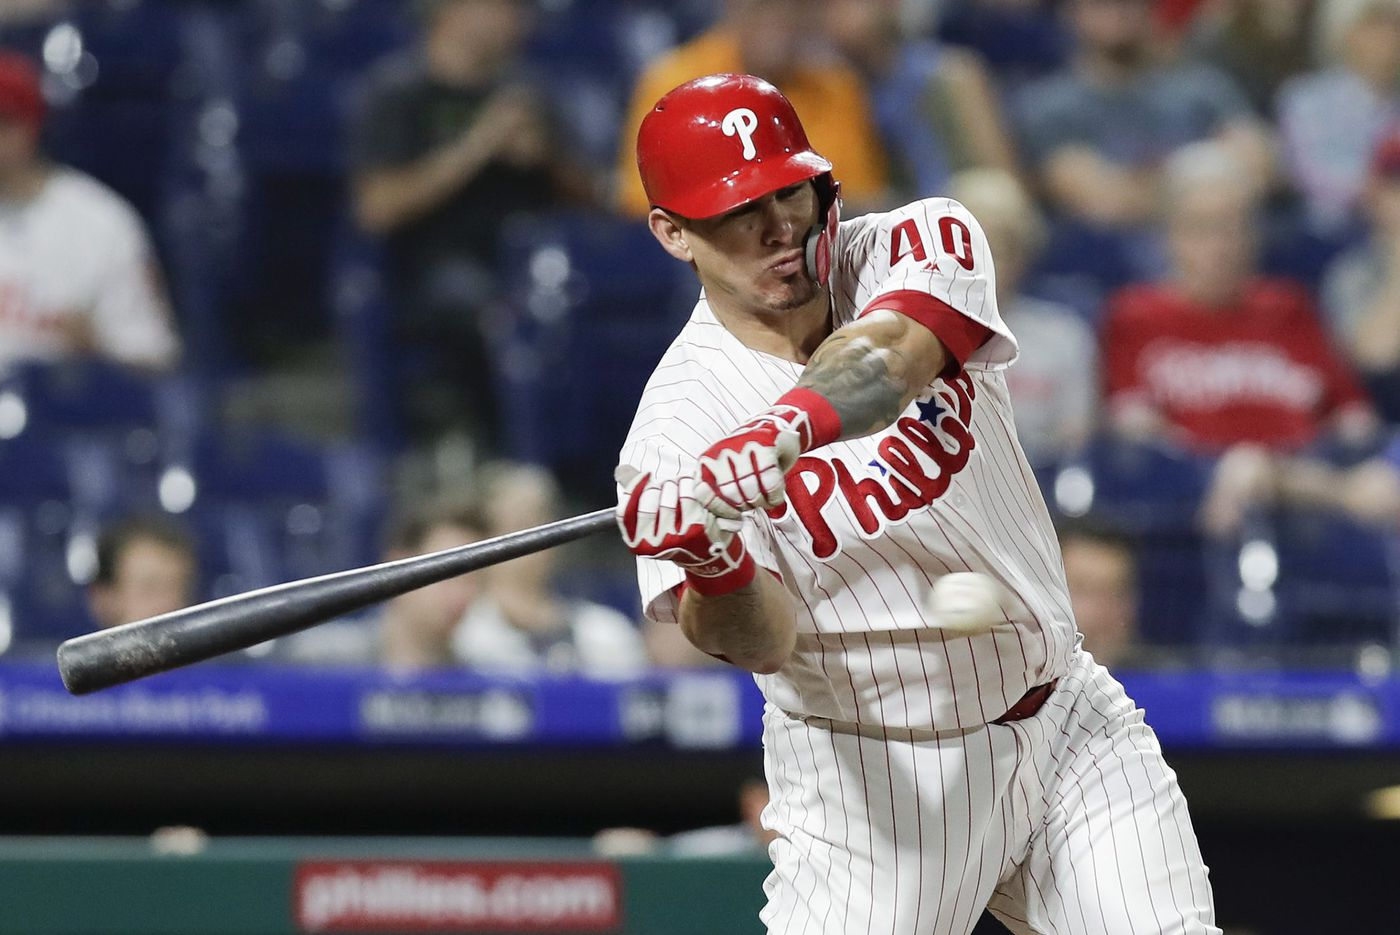 Phillies free agent Wilson Ramos wants to play every day, which makes a return seem unlikely | Matt Breen